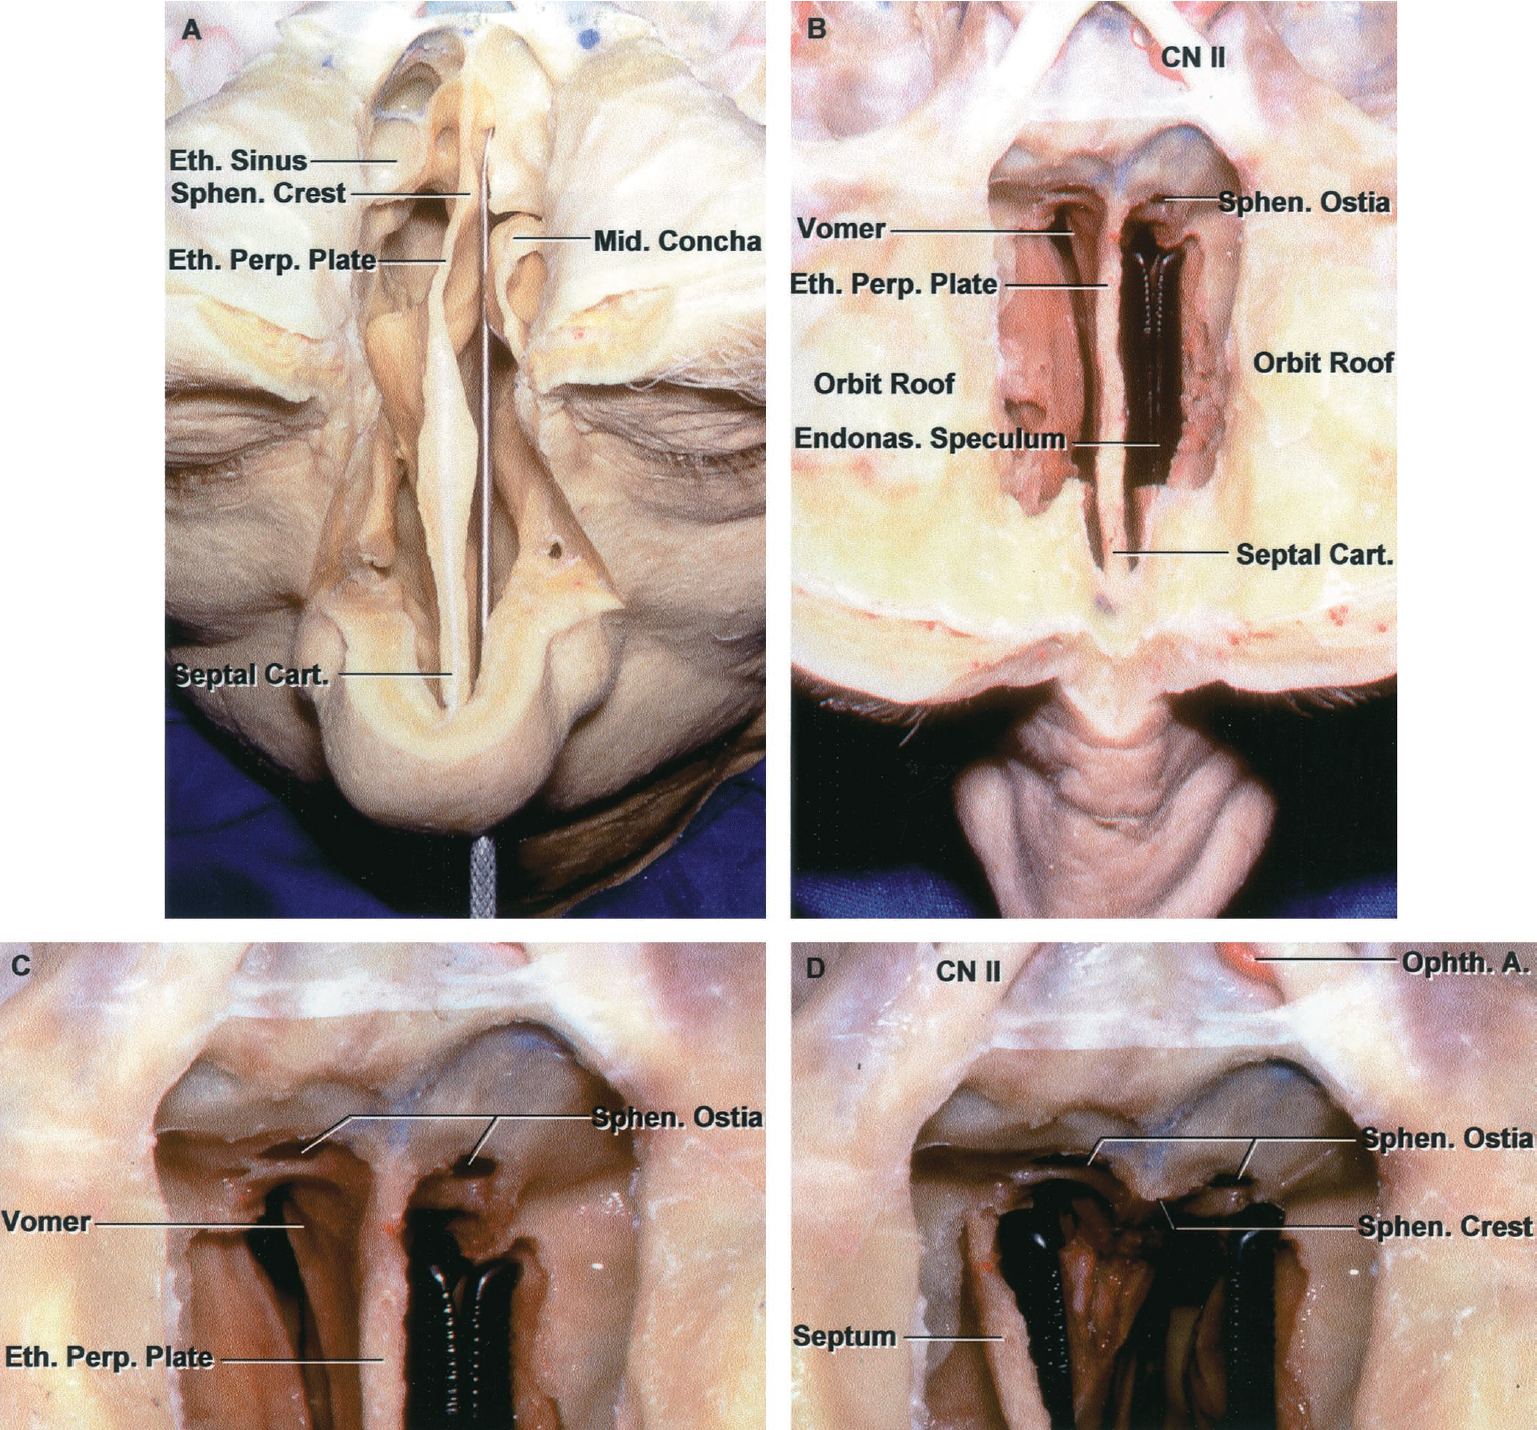 Figure 8.18. Anterosuperior view of the endonasal route to the sphenoid sinus and sellar region. A, the roof of the nasal cavity and medial part of the floor of the anterior fossa have been removed to expose the endonasal route to the sellar region. The speculum in the endonasal approach is advanced along the course of the probe. It is advanced in one nostril and passed upward between the nasal septum and the concha to the sphenoid face. The posterior part of the middle concha provides a relative obstacle to exposing the face of the sphenoid in this case, but the concha can be displaced laterally by the blades of the speculum. A prominent concha, like this, may tend to deflect the speculum to the opposite side, unless care is taken to center the speculum blades on each side of the midline vertical crest on the sphenoid face. The posterior ethmoid air cells are positioned anterior to the lateral part of the sphenoid face. The nasal septum, in this case, is deviated to the right. B, the endonasal speculum has been advanced to the sphenoid face in the area below the sphenoid ostia. The septum at this level is formed by the perpendicular plate of the ethmoid. The septum below is formed by the vomer. C, enlarged view of the speculum blades at the face of the sphenoid. The mucosa is opened in the area below the sphenoid ostia and elevated in a small area so that the blades can be inserted submucosally. D, opening the speculum separates a small section of the septum from the sphenoid face and displaces the septum to the opposite side. The speculum blades can then be advanced submucosally along the sphenoid face bilaterally. The crest on the sphenoid face formed by the ethmoid perpendicular plate and vomer should be positioned in the midline between the blades of the speculum. A., artery; Cart., cartilage; CN, cranial nerve; Endonas., endonasal; Eth., ethmoid; Mid., middle; Ophth., ophthalmic; Perp., perpendicular; Sept., septal; Sphen., sphenoid. (Images courtesy of AL Rho